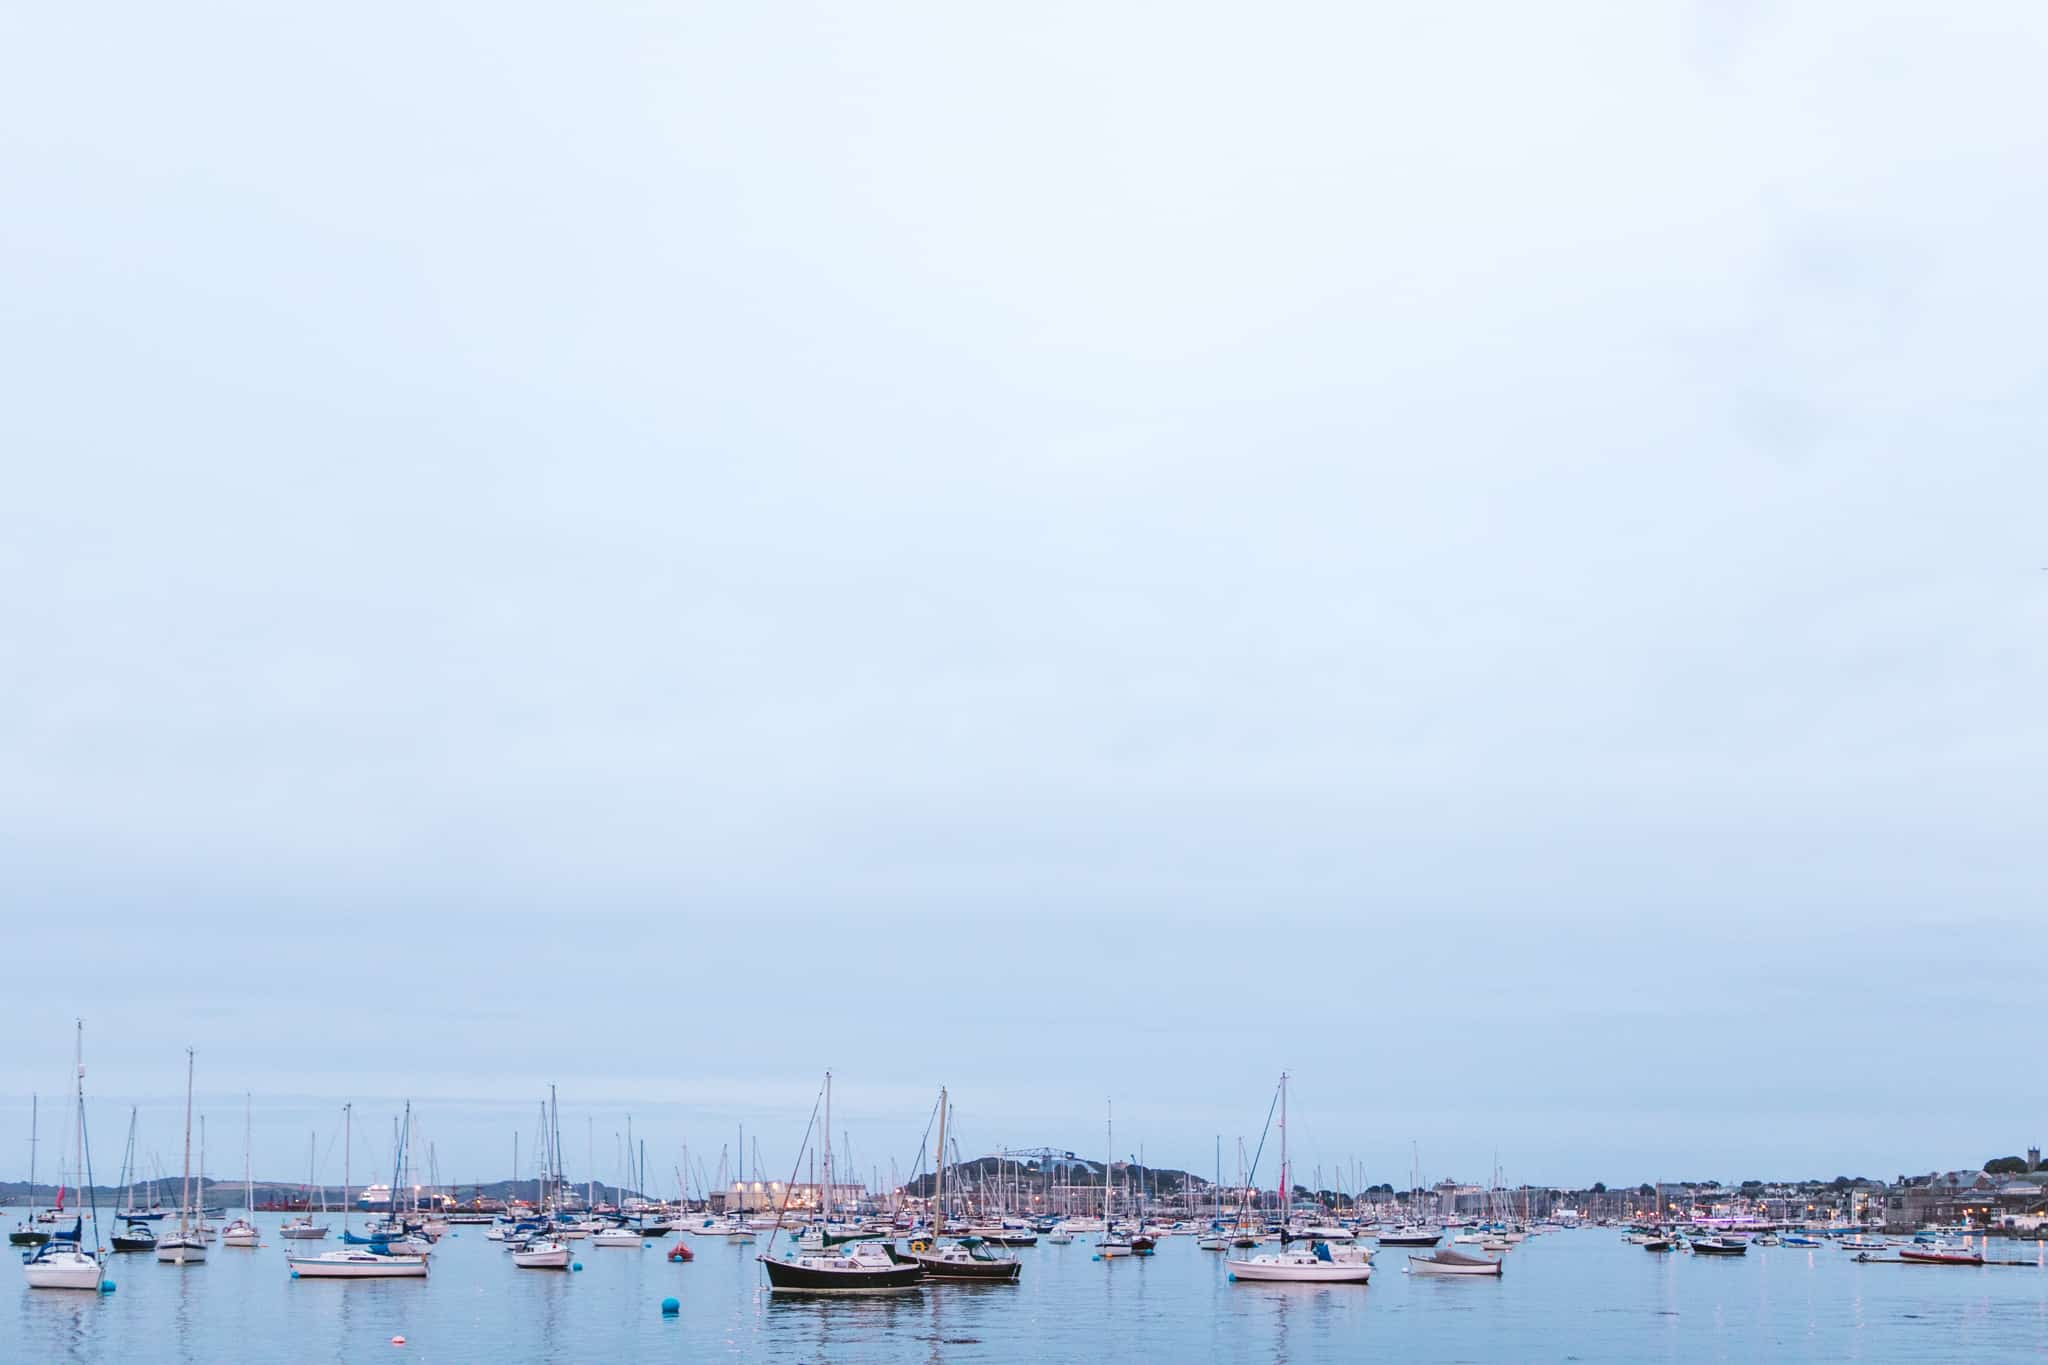 falmouth-week-at-the-working-boat-pub-live-music-events-falmouth-cornwall (49 of 114)